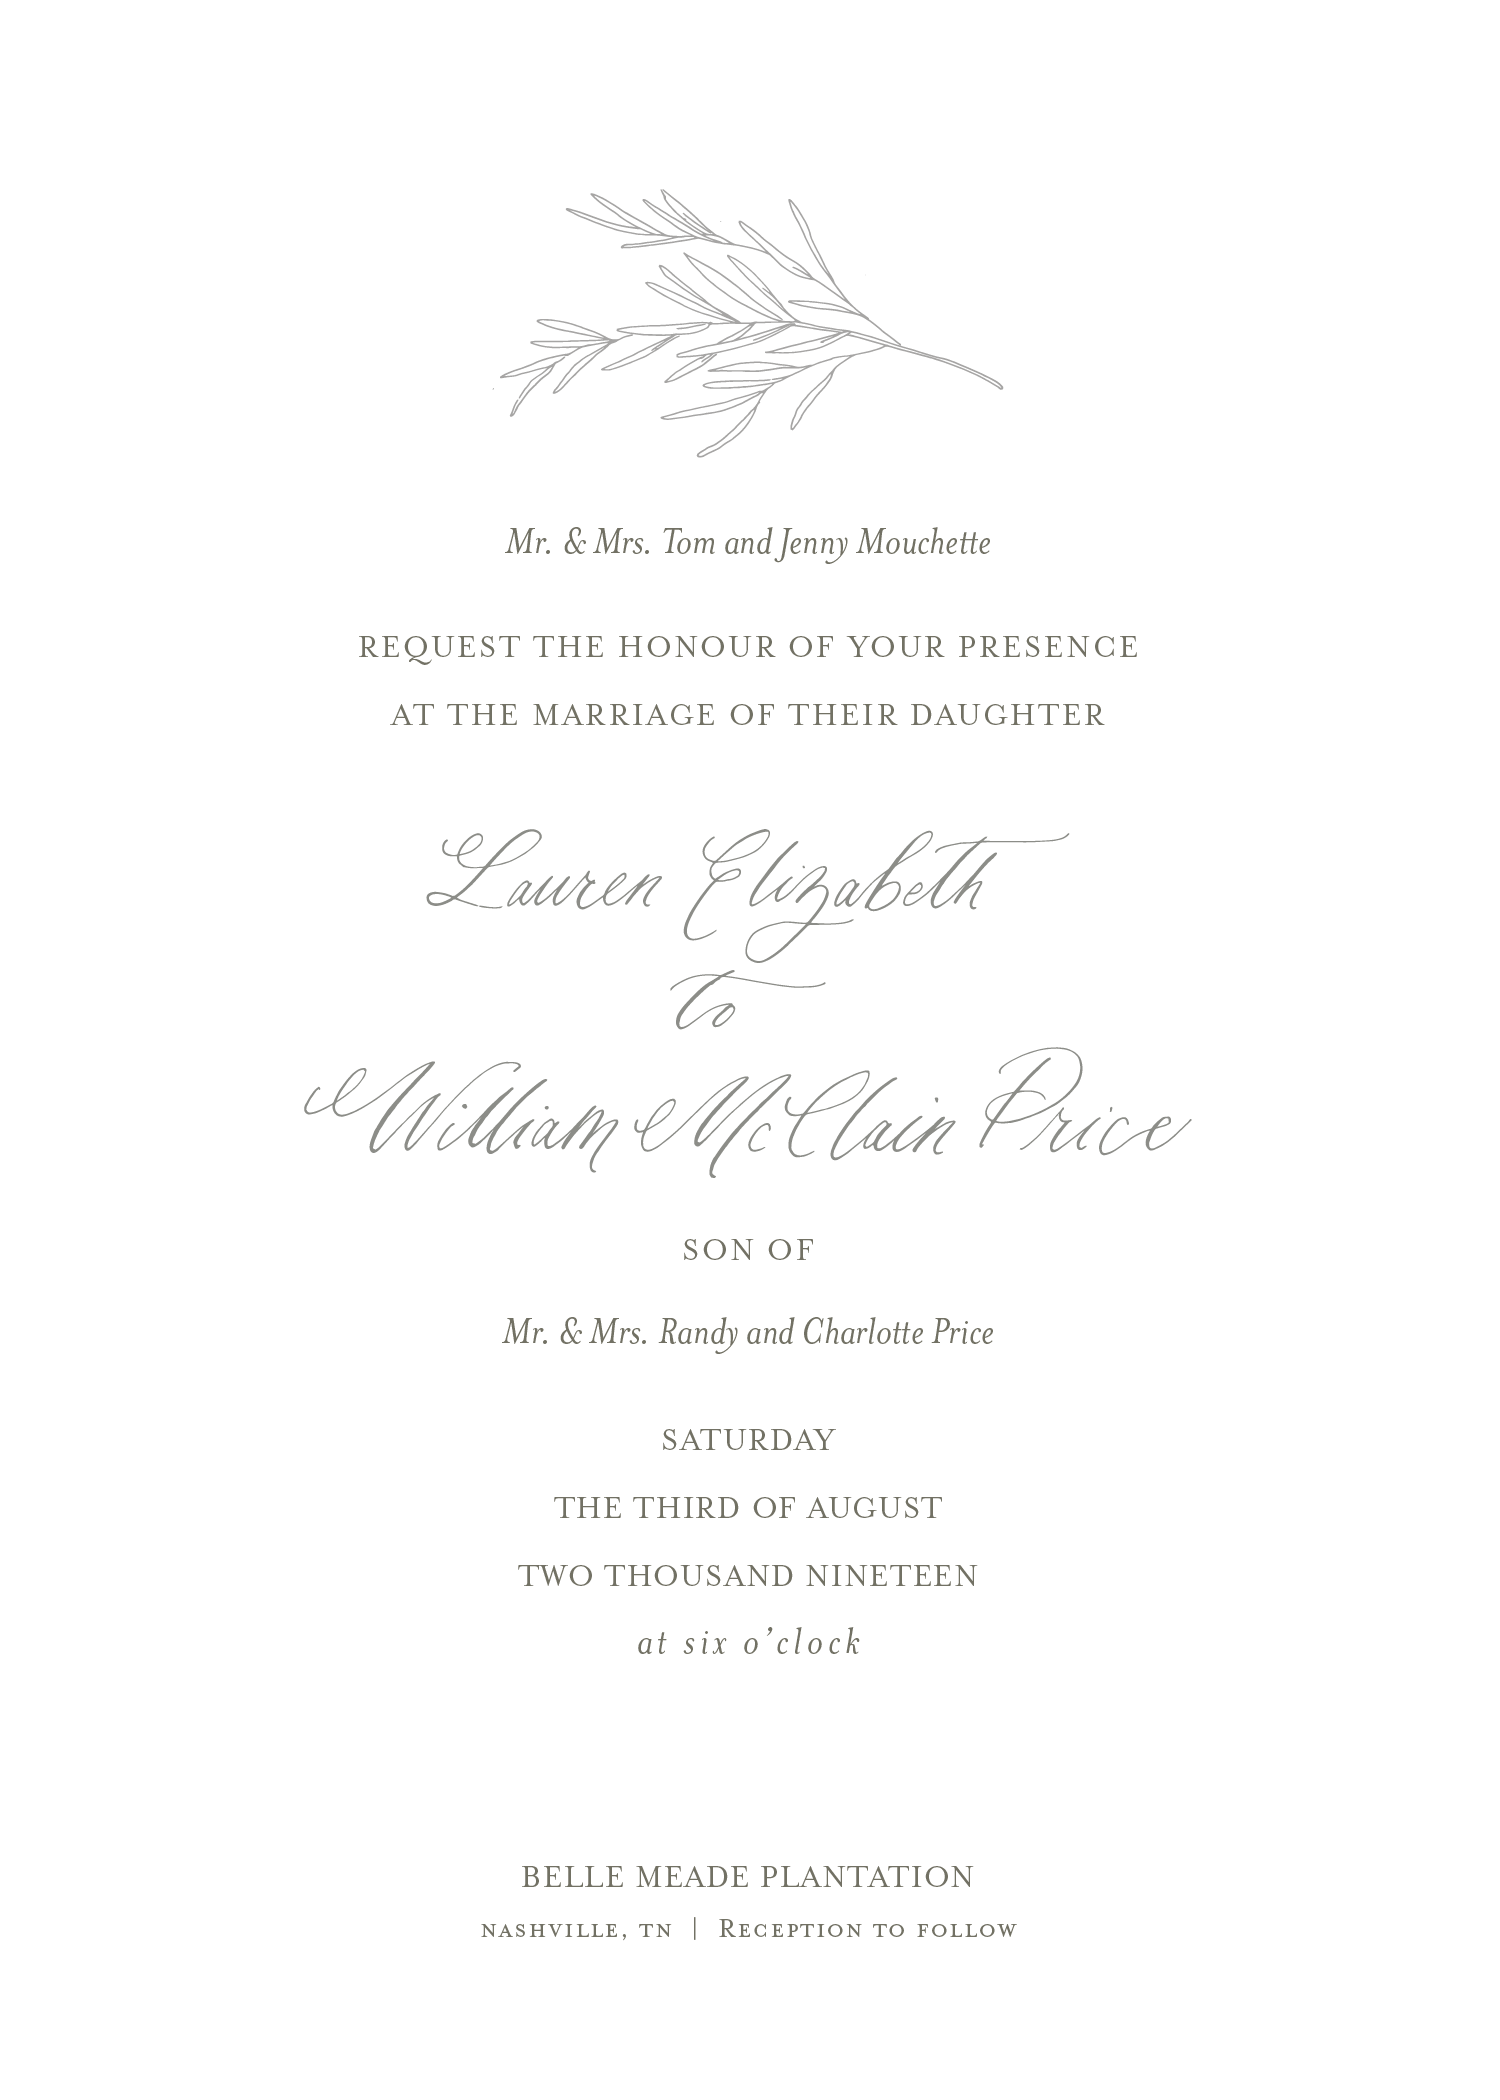 FormalInvite.png